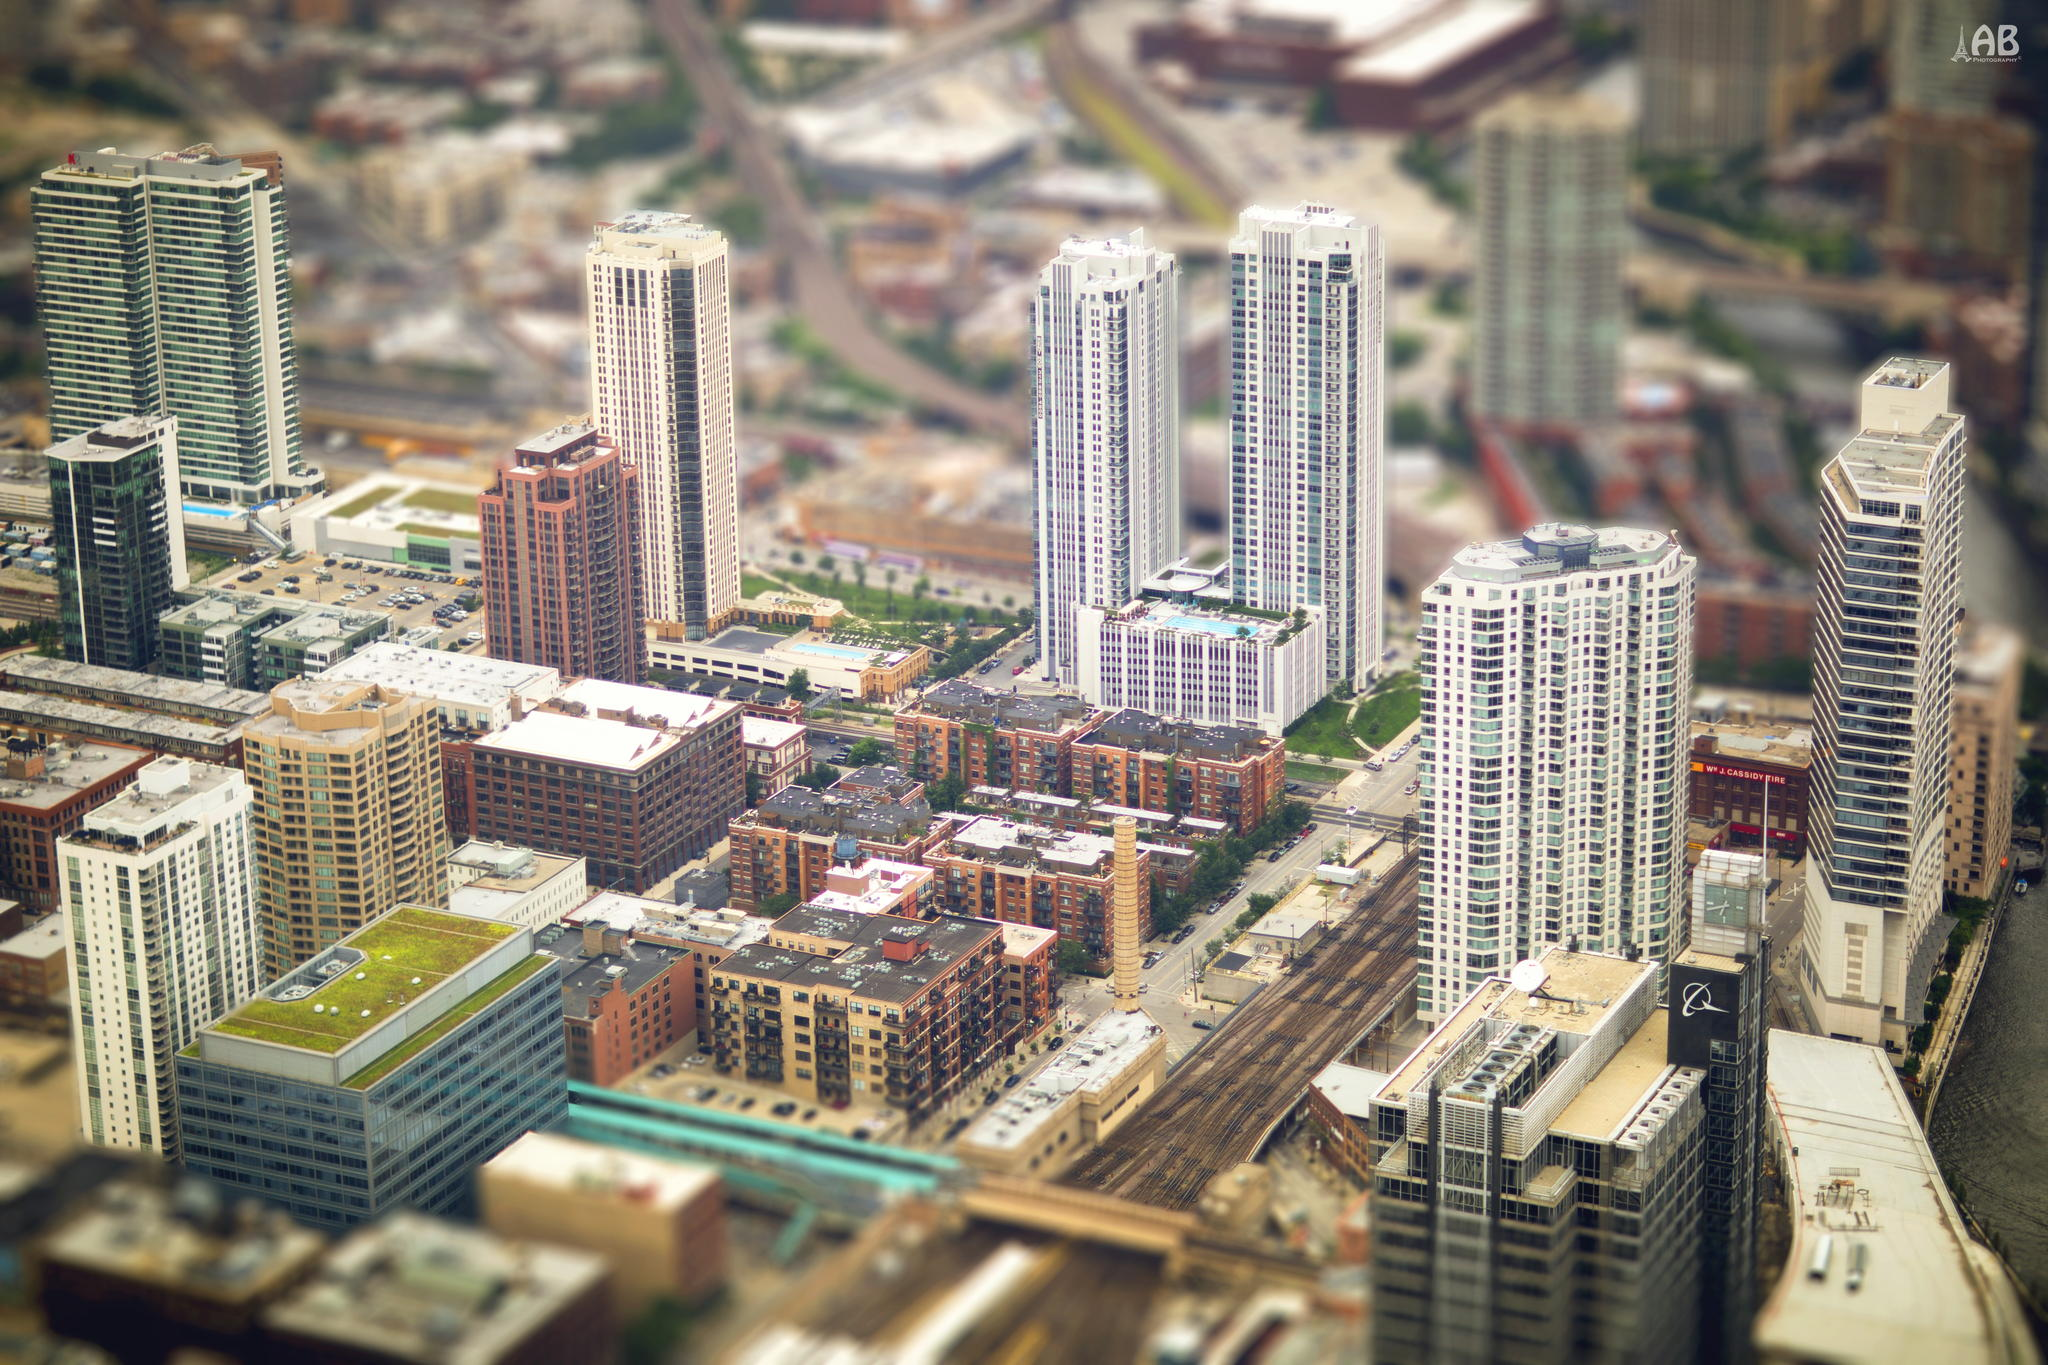 How To Create A Fake Tilt-Shift Effect On Your Images